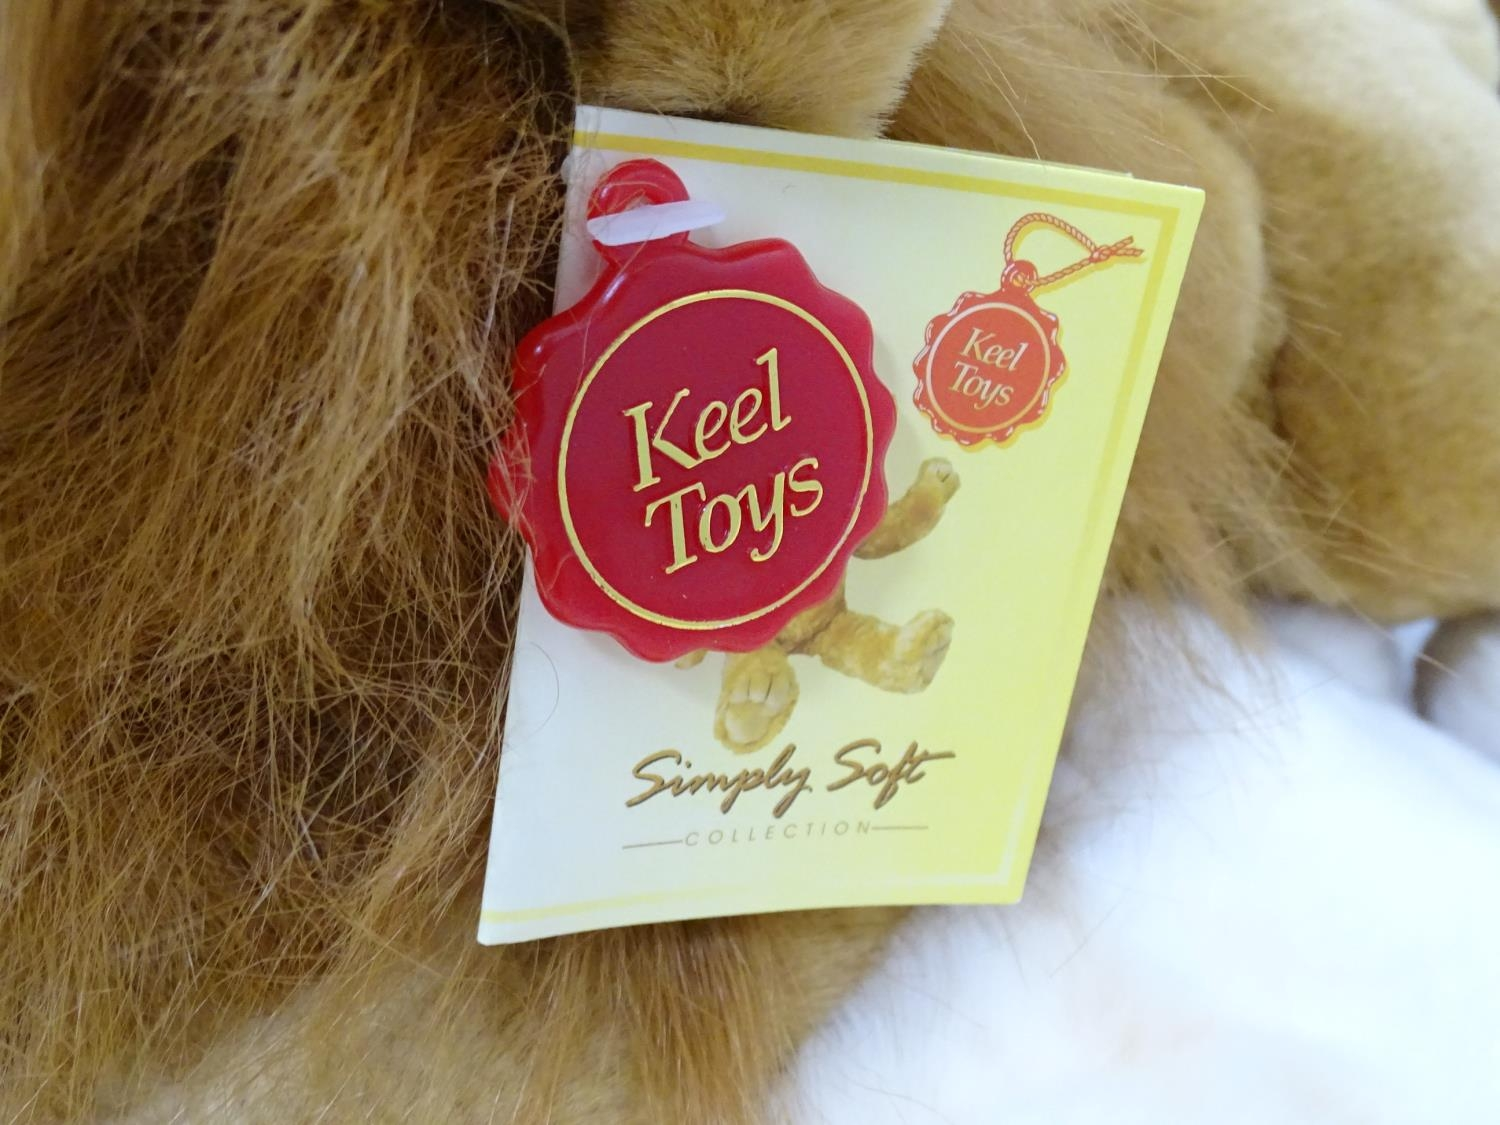 A quantity of Keel soft toys Please Note - we do not make reference to the condition of lots - Image 7 of 9